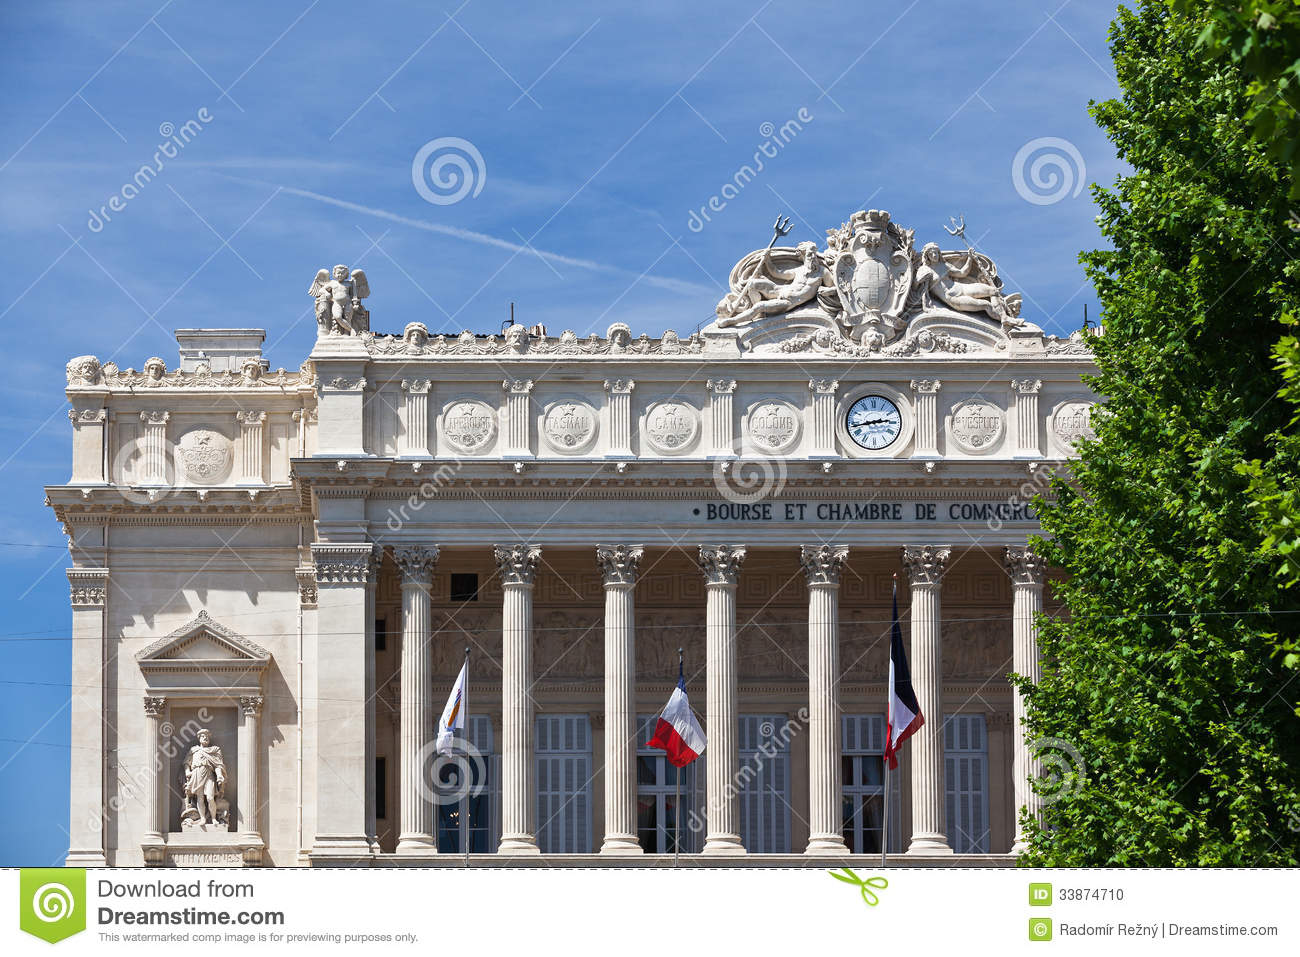 Bourse et chambre de commerce in marseille stock photo for Chambre de commerce chicoutimi